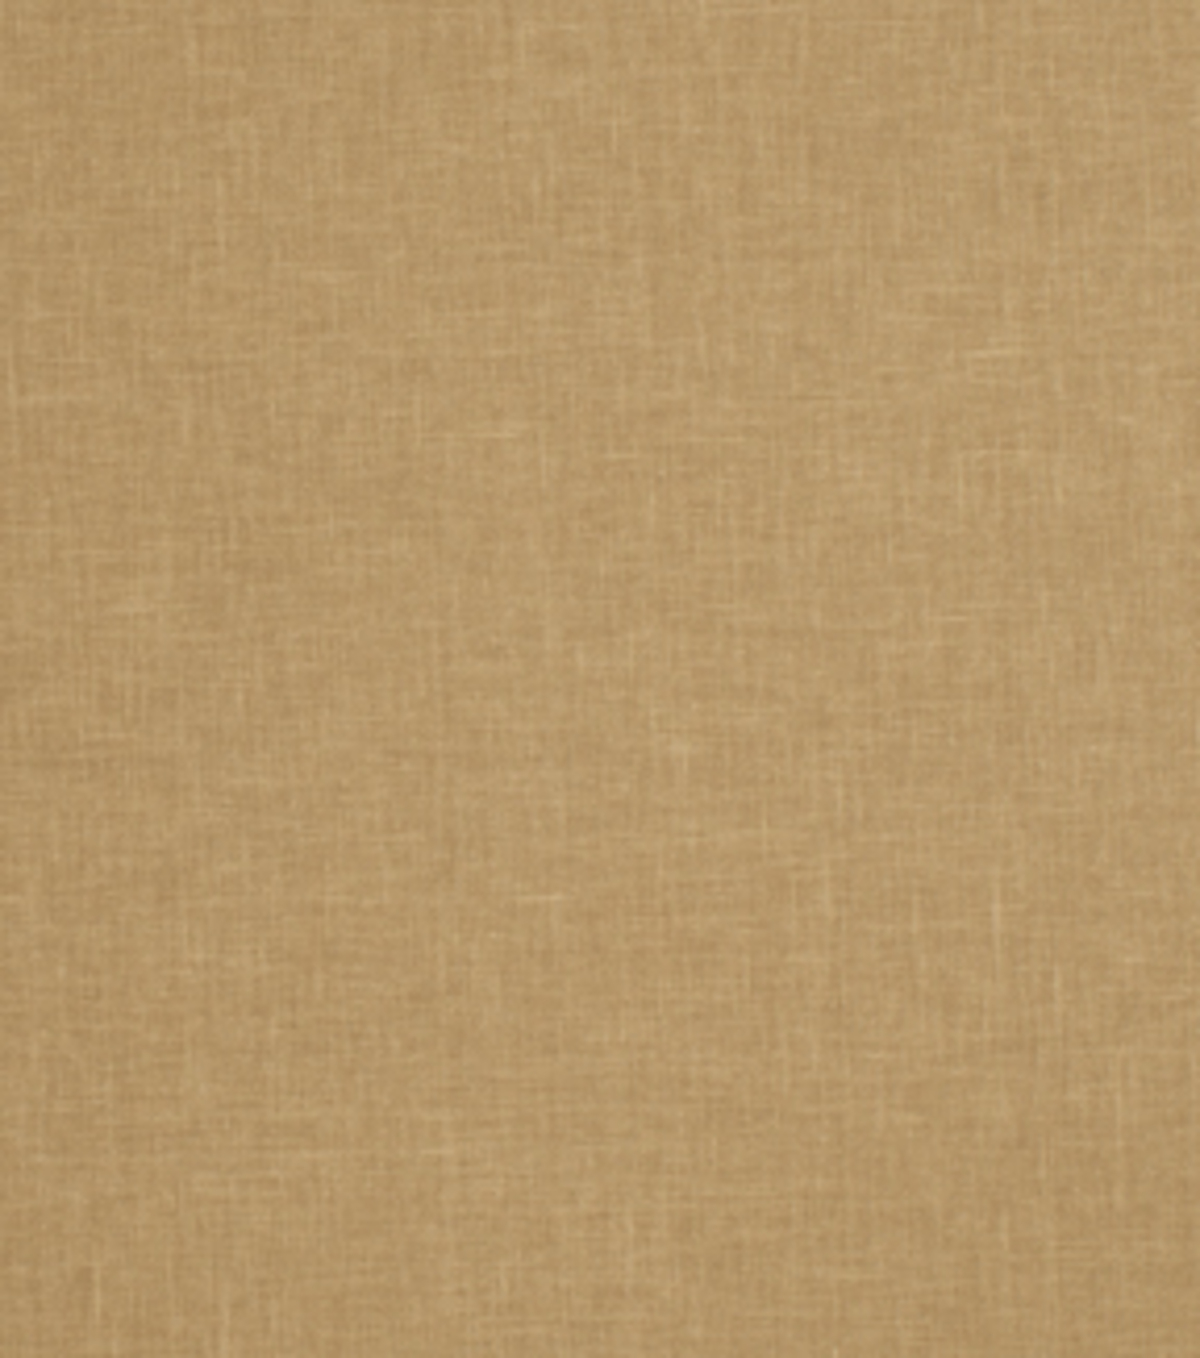 Home Decor 8\u0022x8\u0022 Fabric Swatch-Eaton Square Bannister Camel